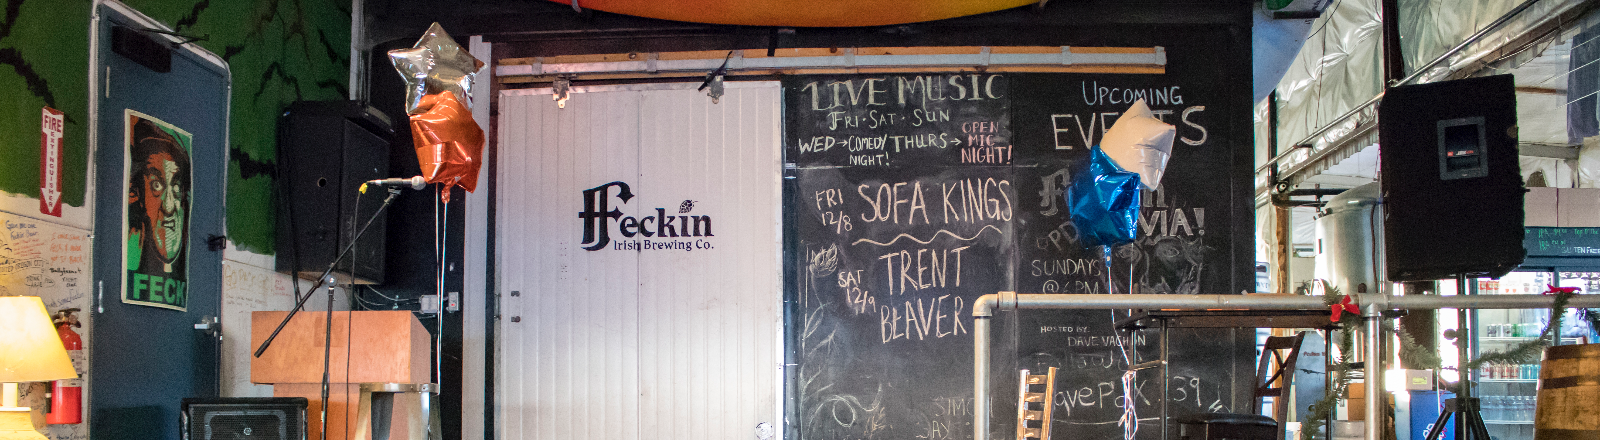 Feckin Brewery & Smokehouse tasting room tables and musical stage with large wall chalkboard of live music listings